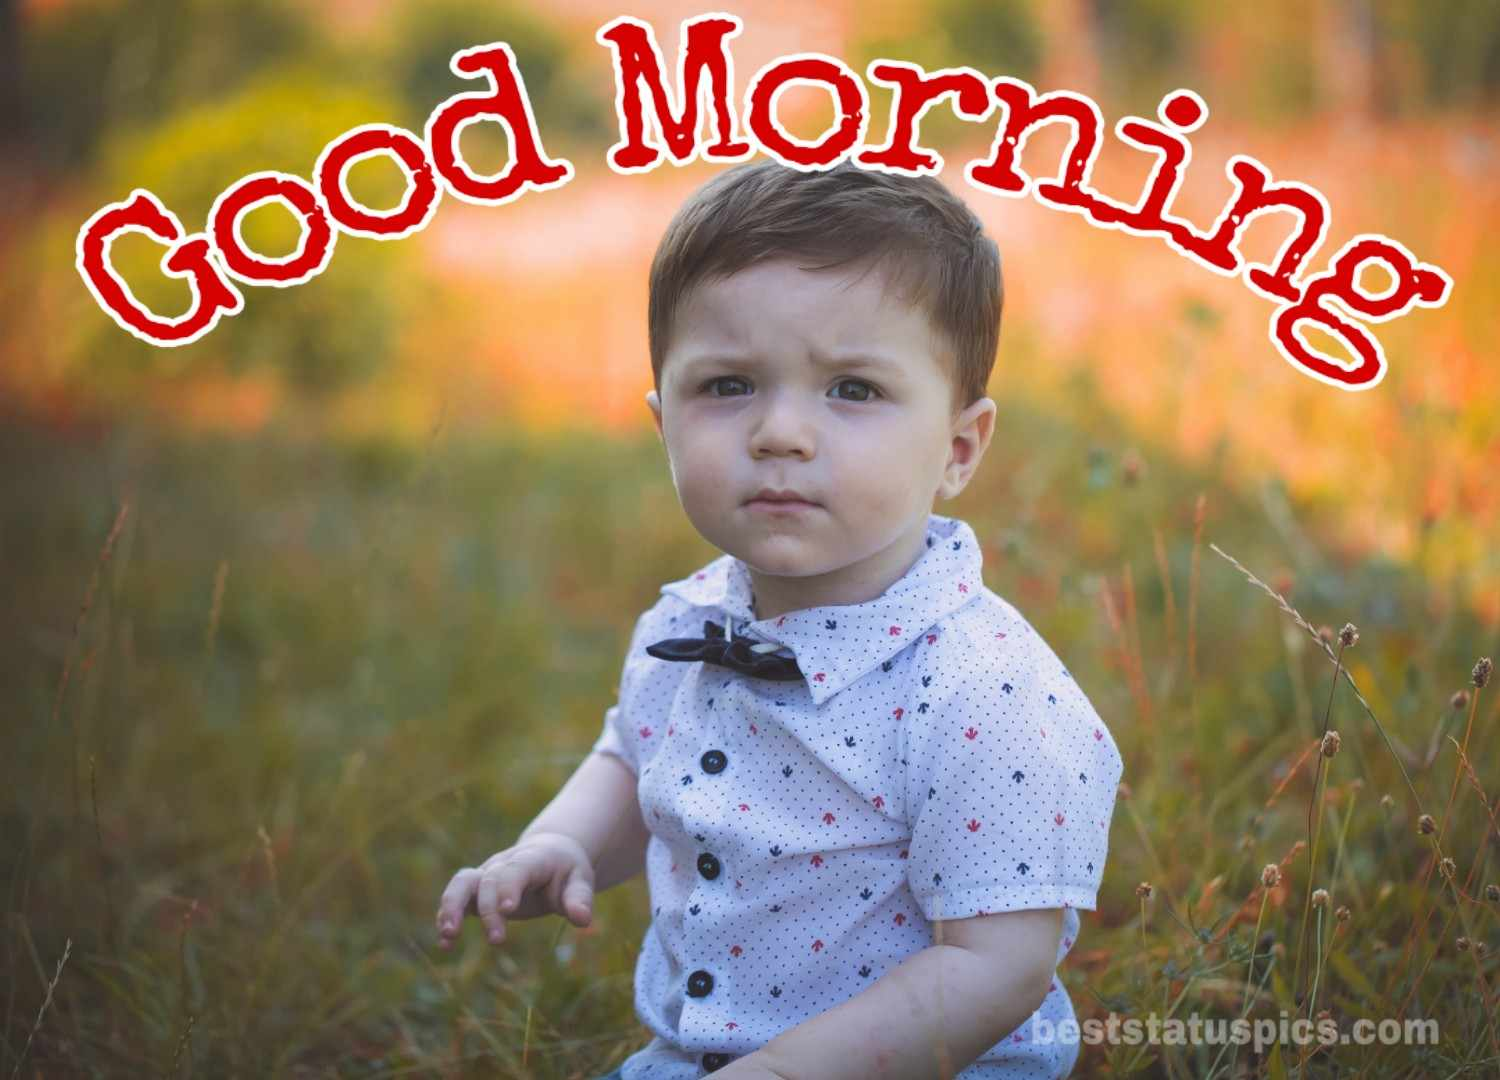 Cute baby boy good morning images in hd